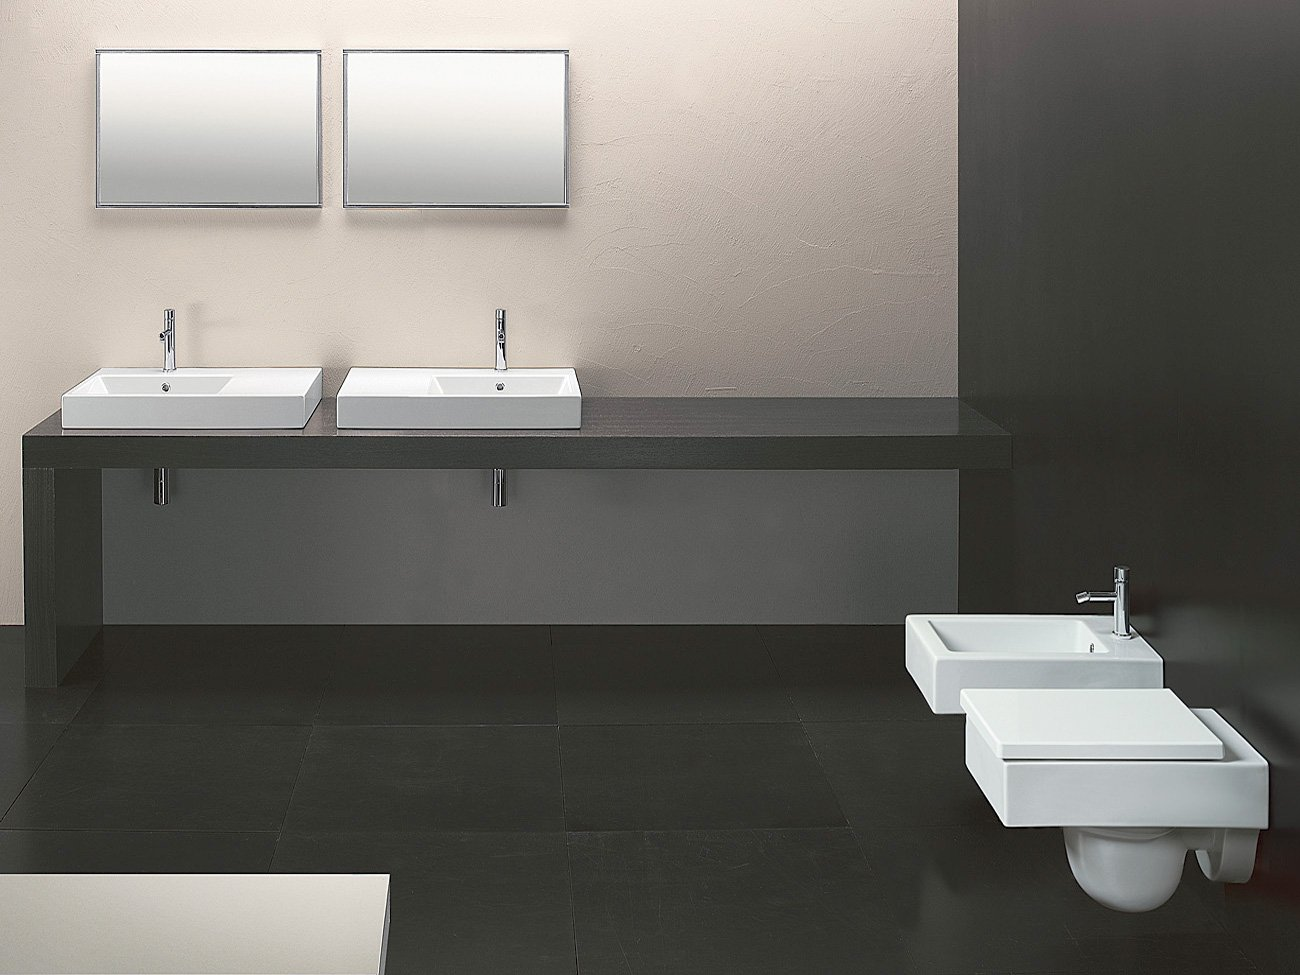 Zero domino 75 lavabo by ceramica catalano design cdc catalano for Ceramica catalano